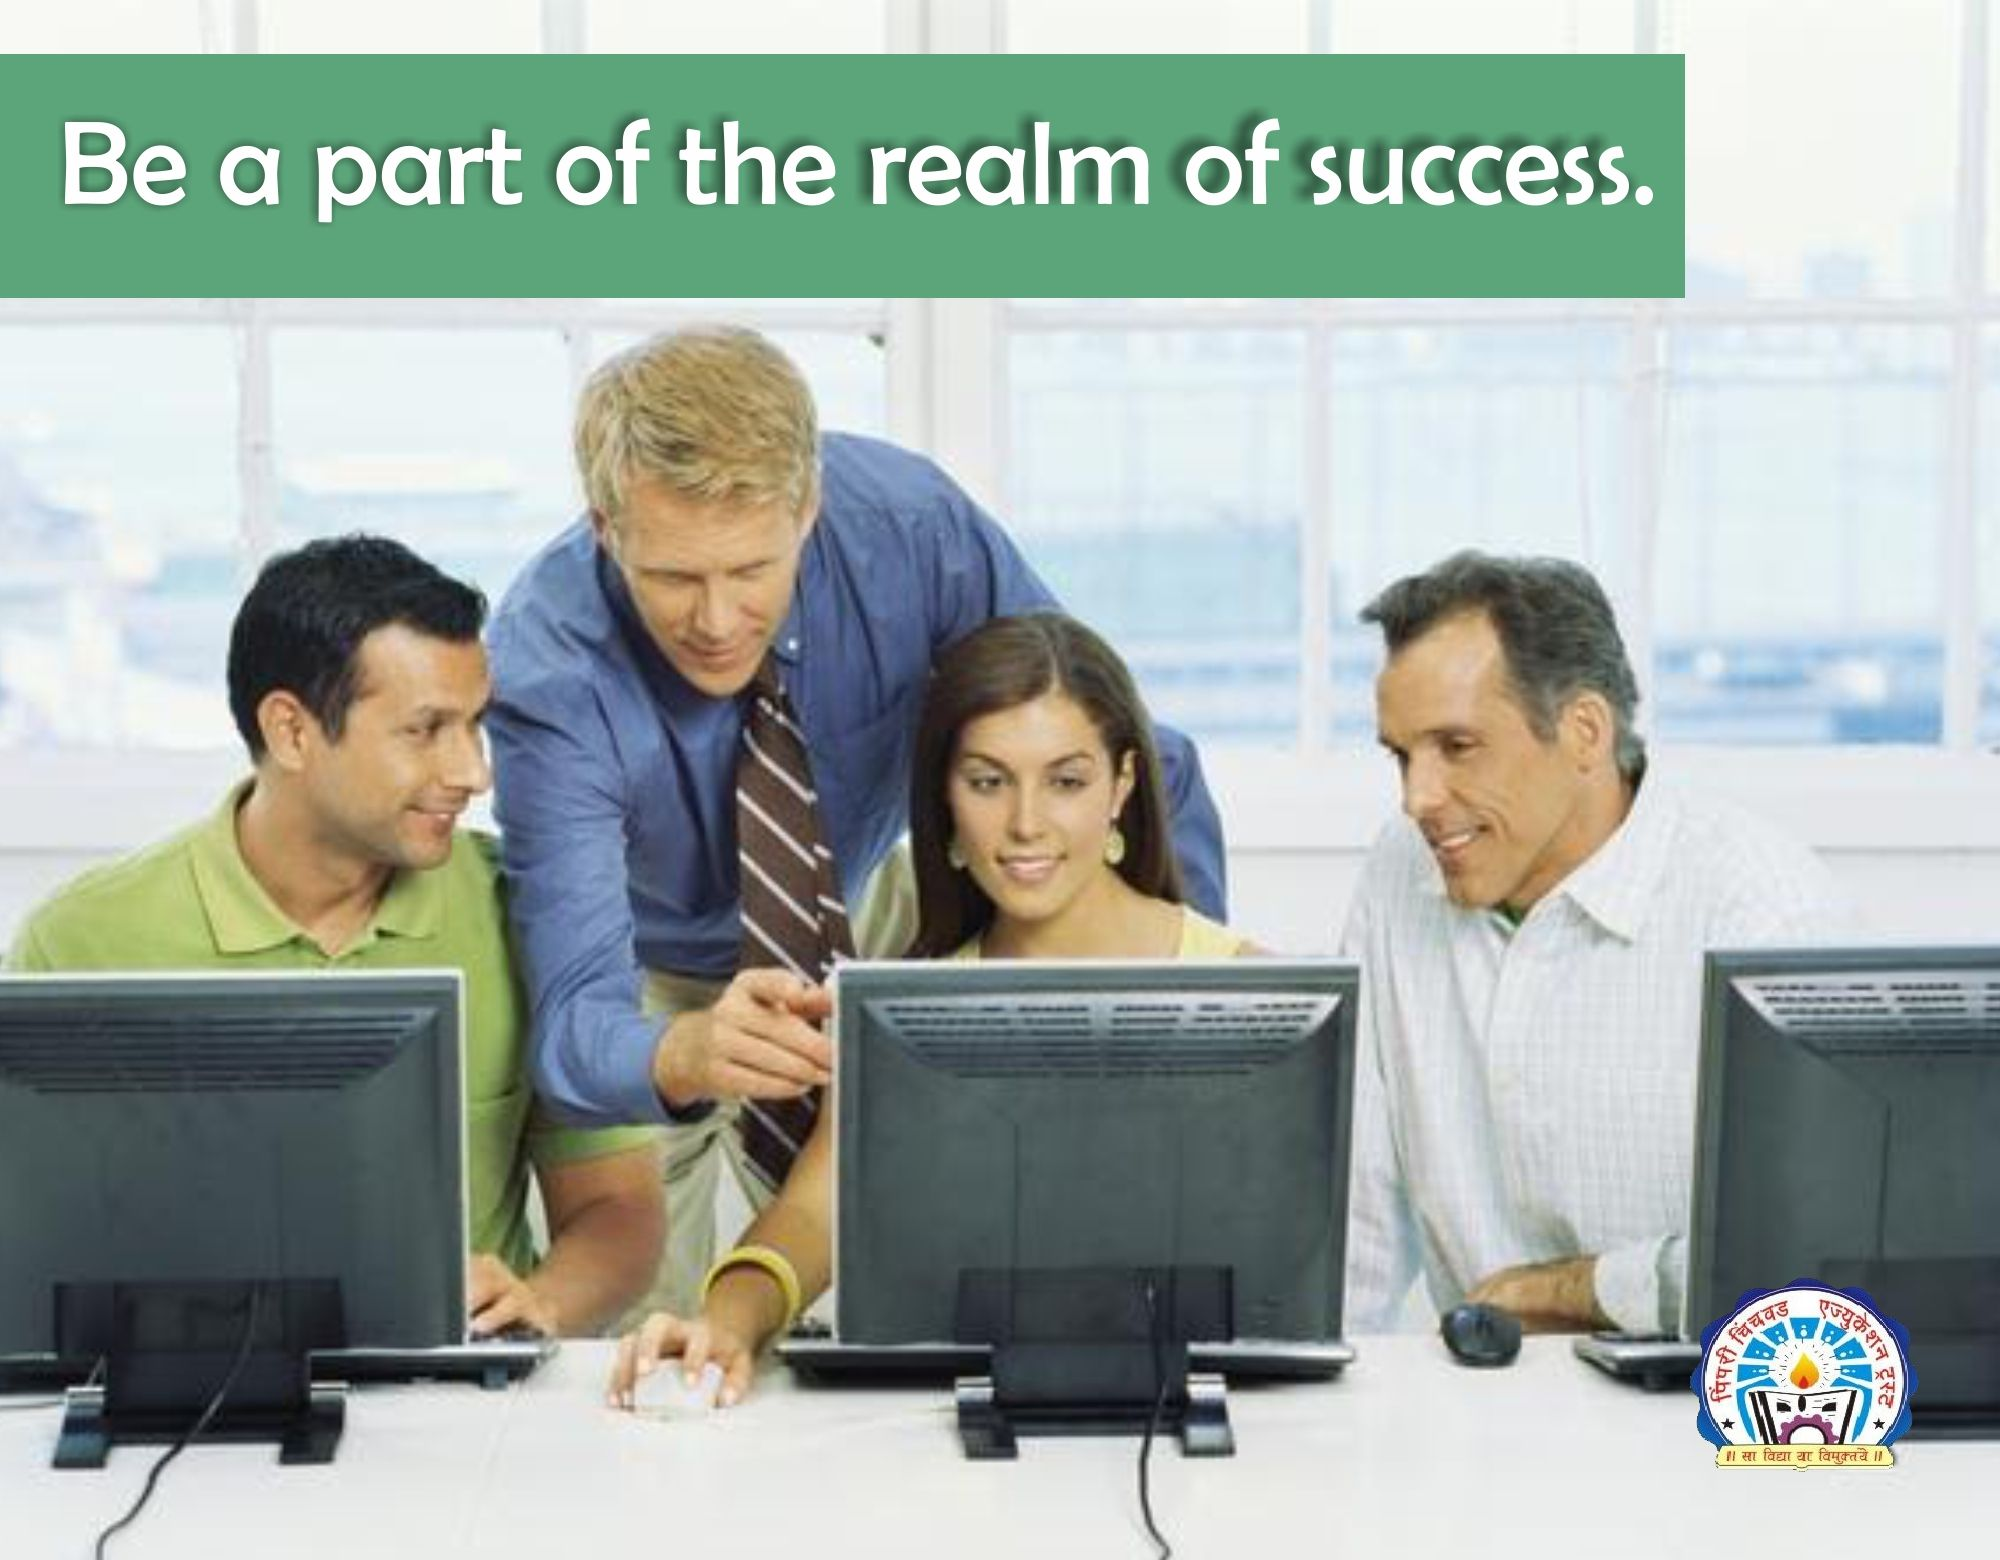 Join the realm of success in a venture of quality